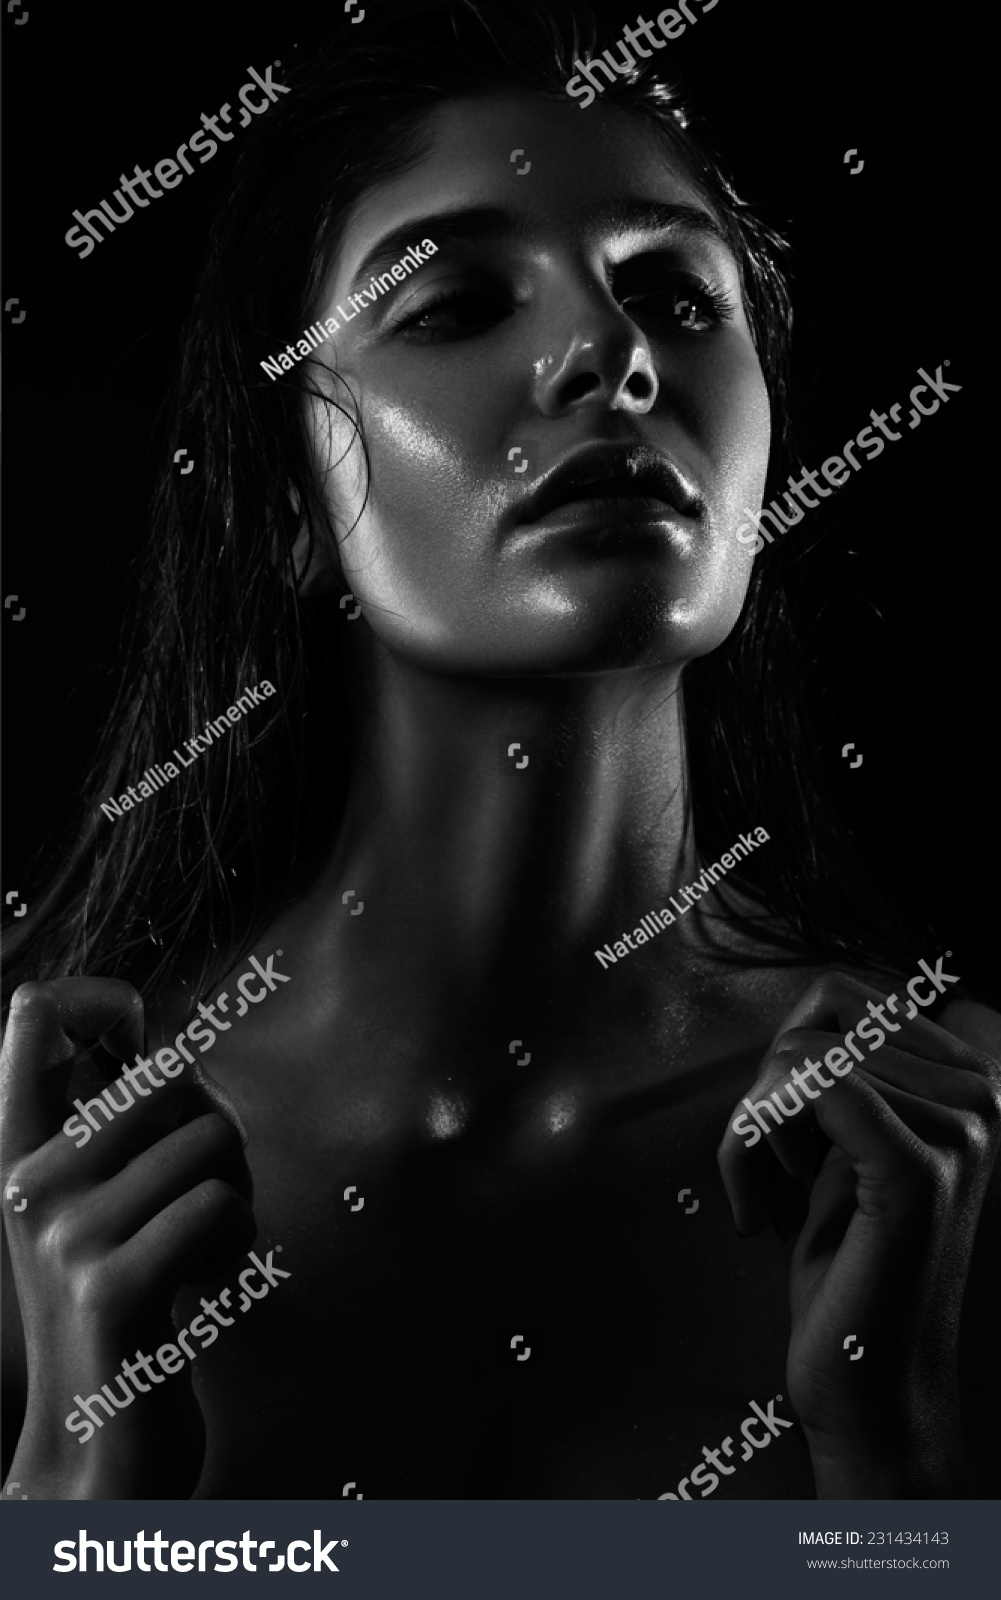 Trend beauty at the studio model with wet face skin and hair shooting in black and white image